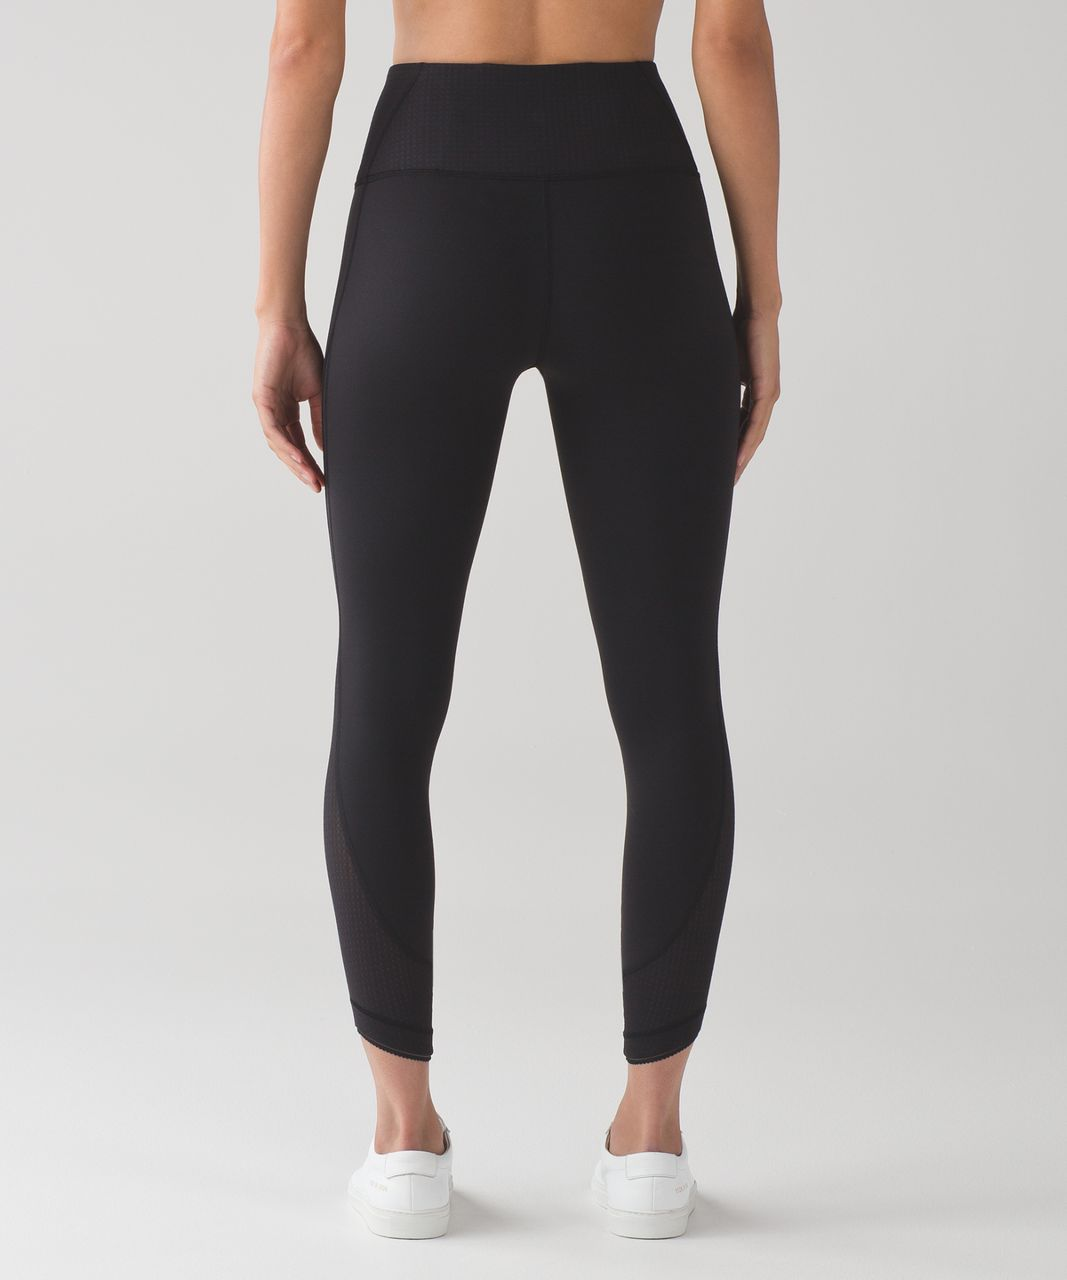 Lululemon High Times Pant (Deep Breath) - Black